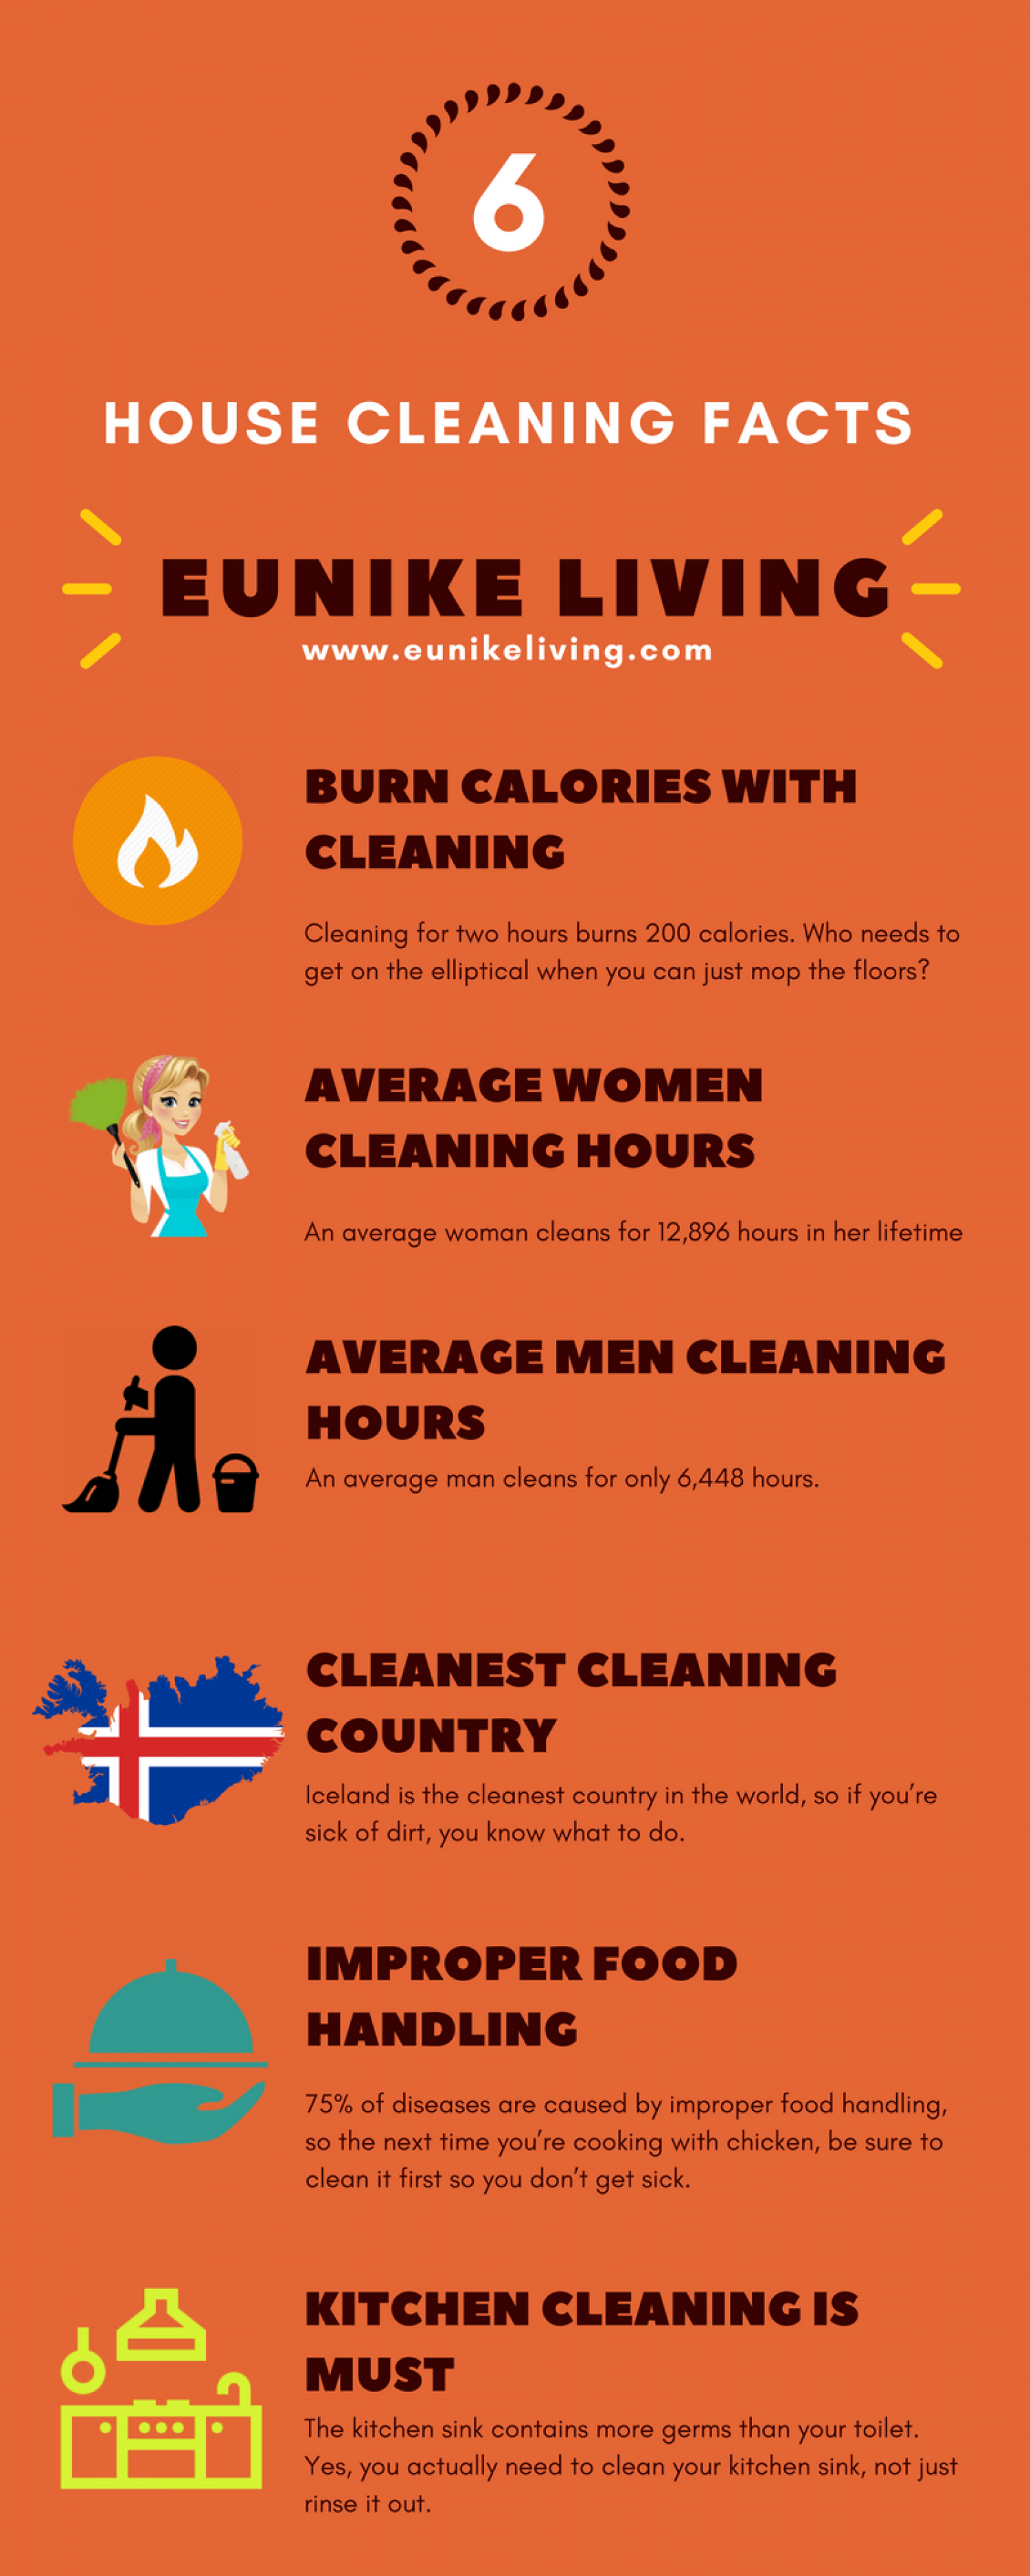 House Cleaning Facts Statistics 2018 Infographic Eunike Living Do You Know Iceland Is One Of The Cleanest Countries In World We Also Have To